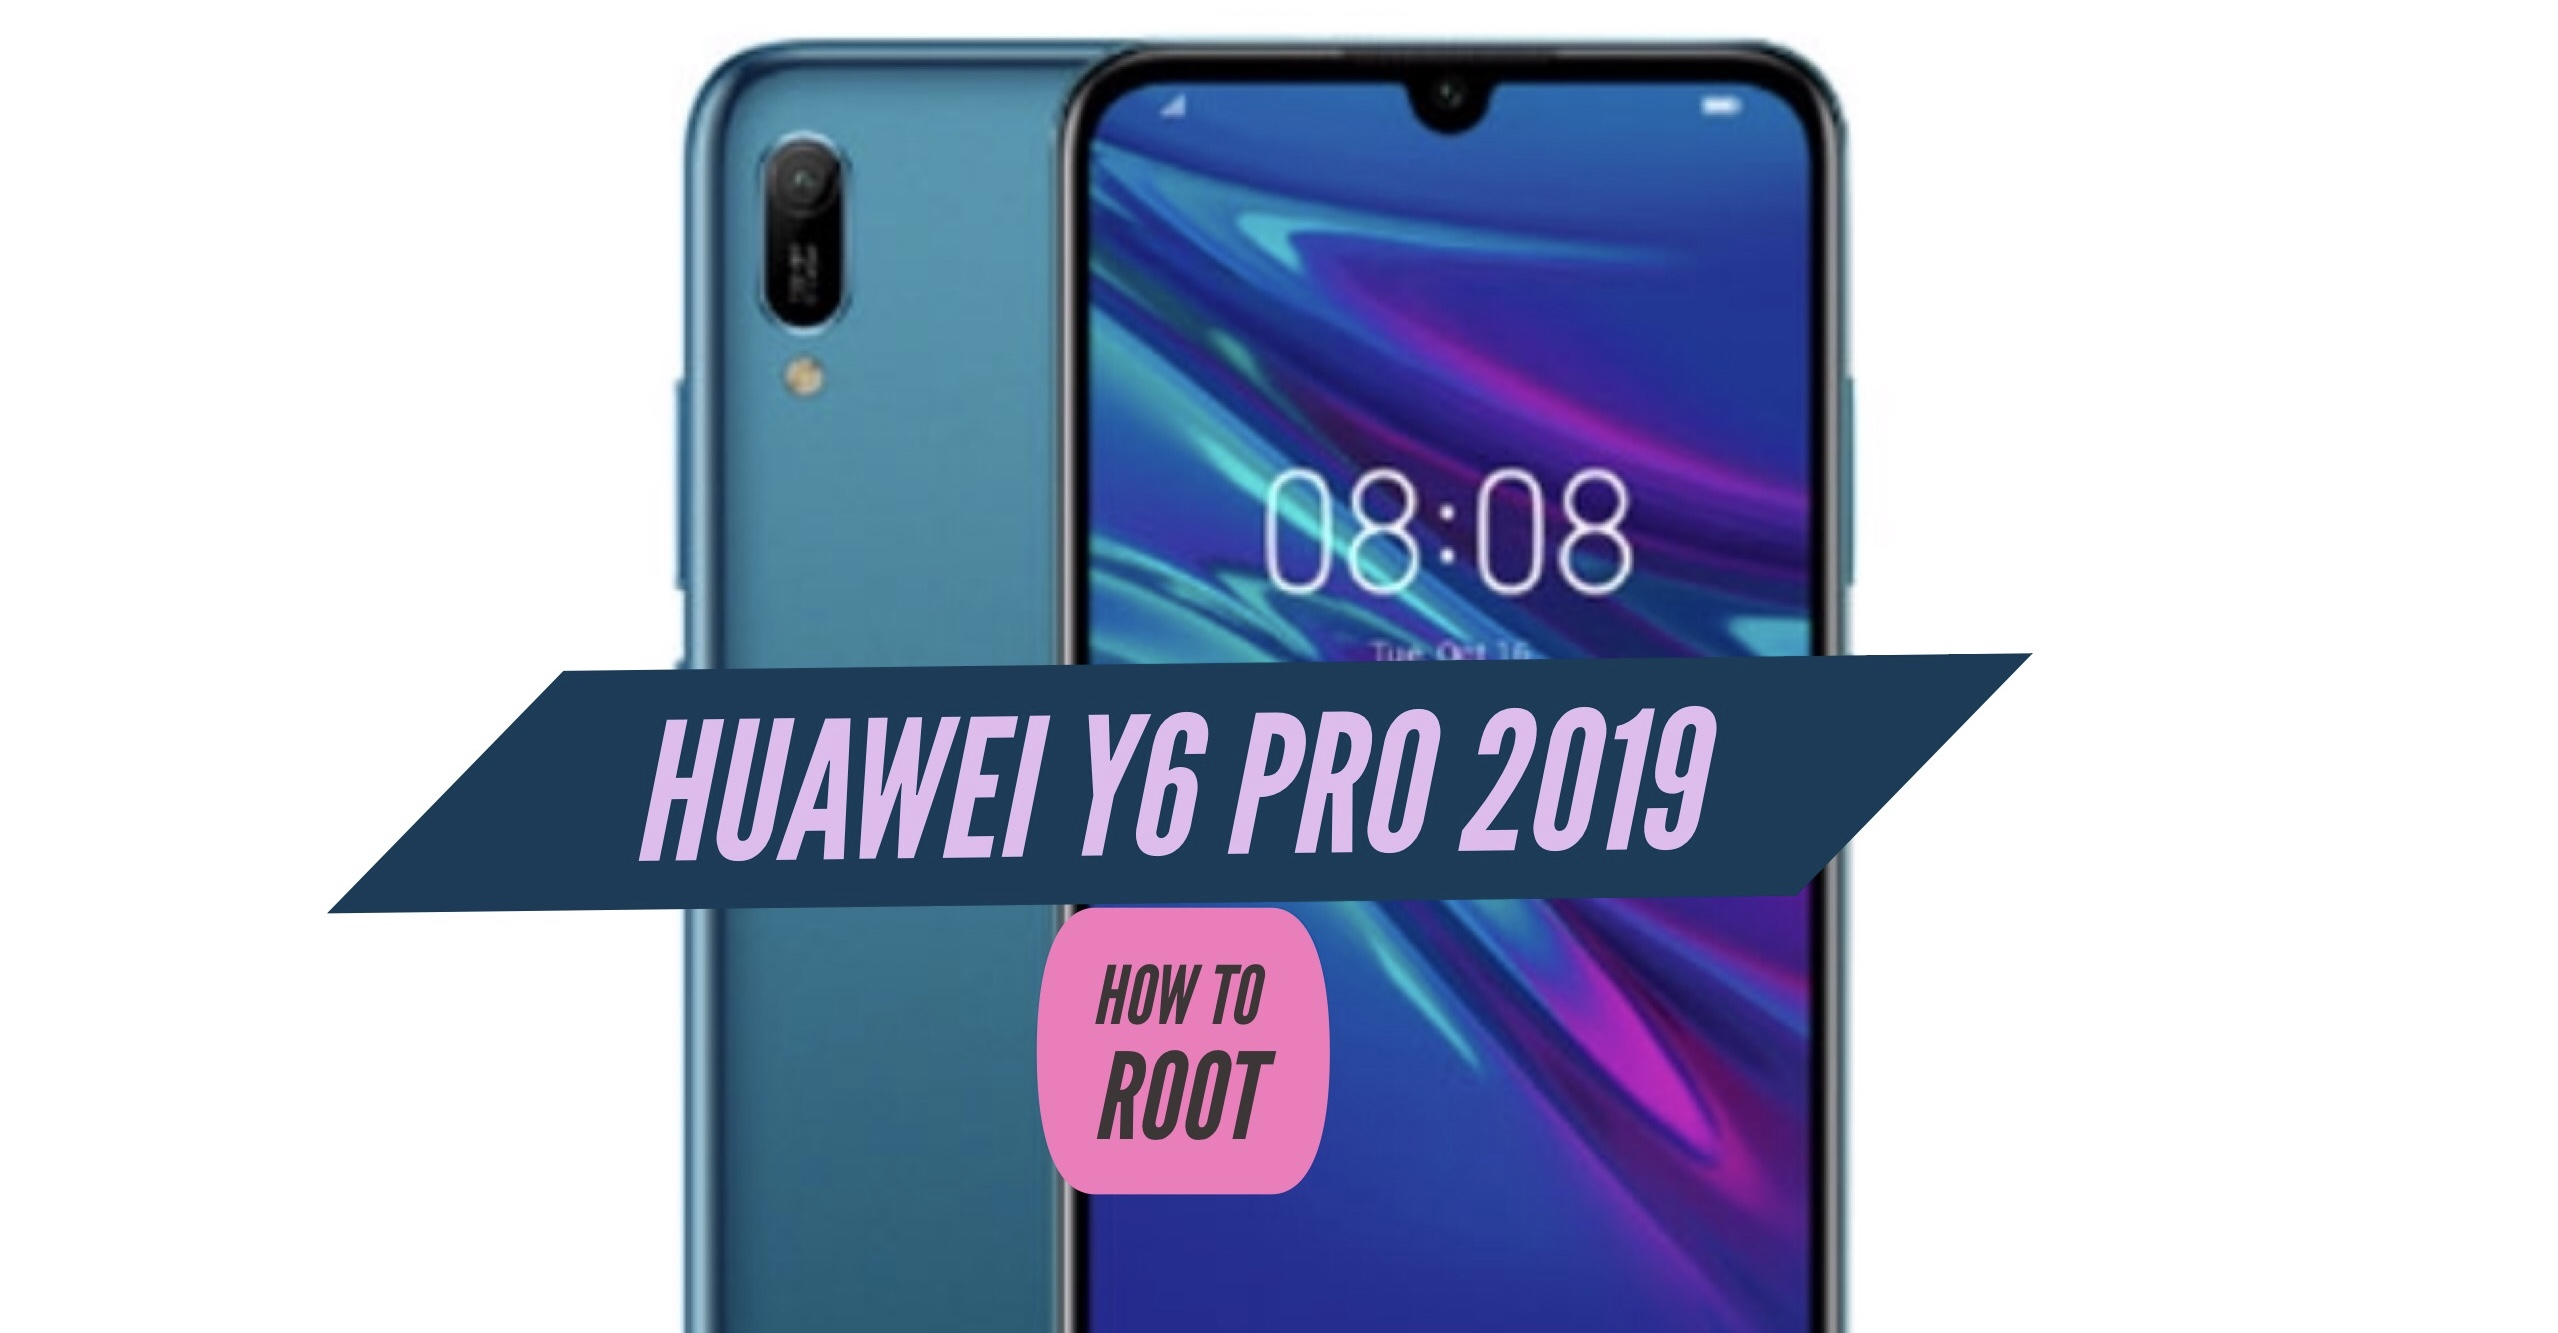 How to Root Huawei Y6 Pro 2019 via SuperSU & Magisk + Without PC